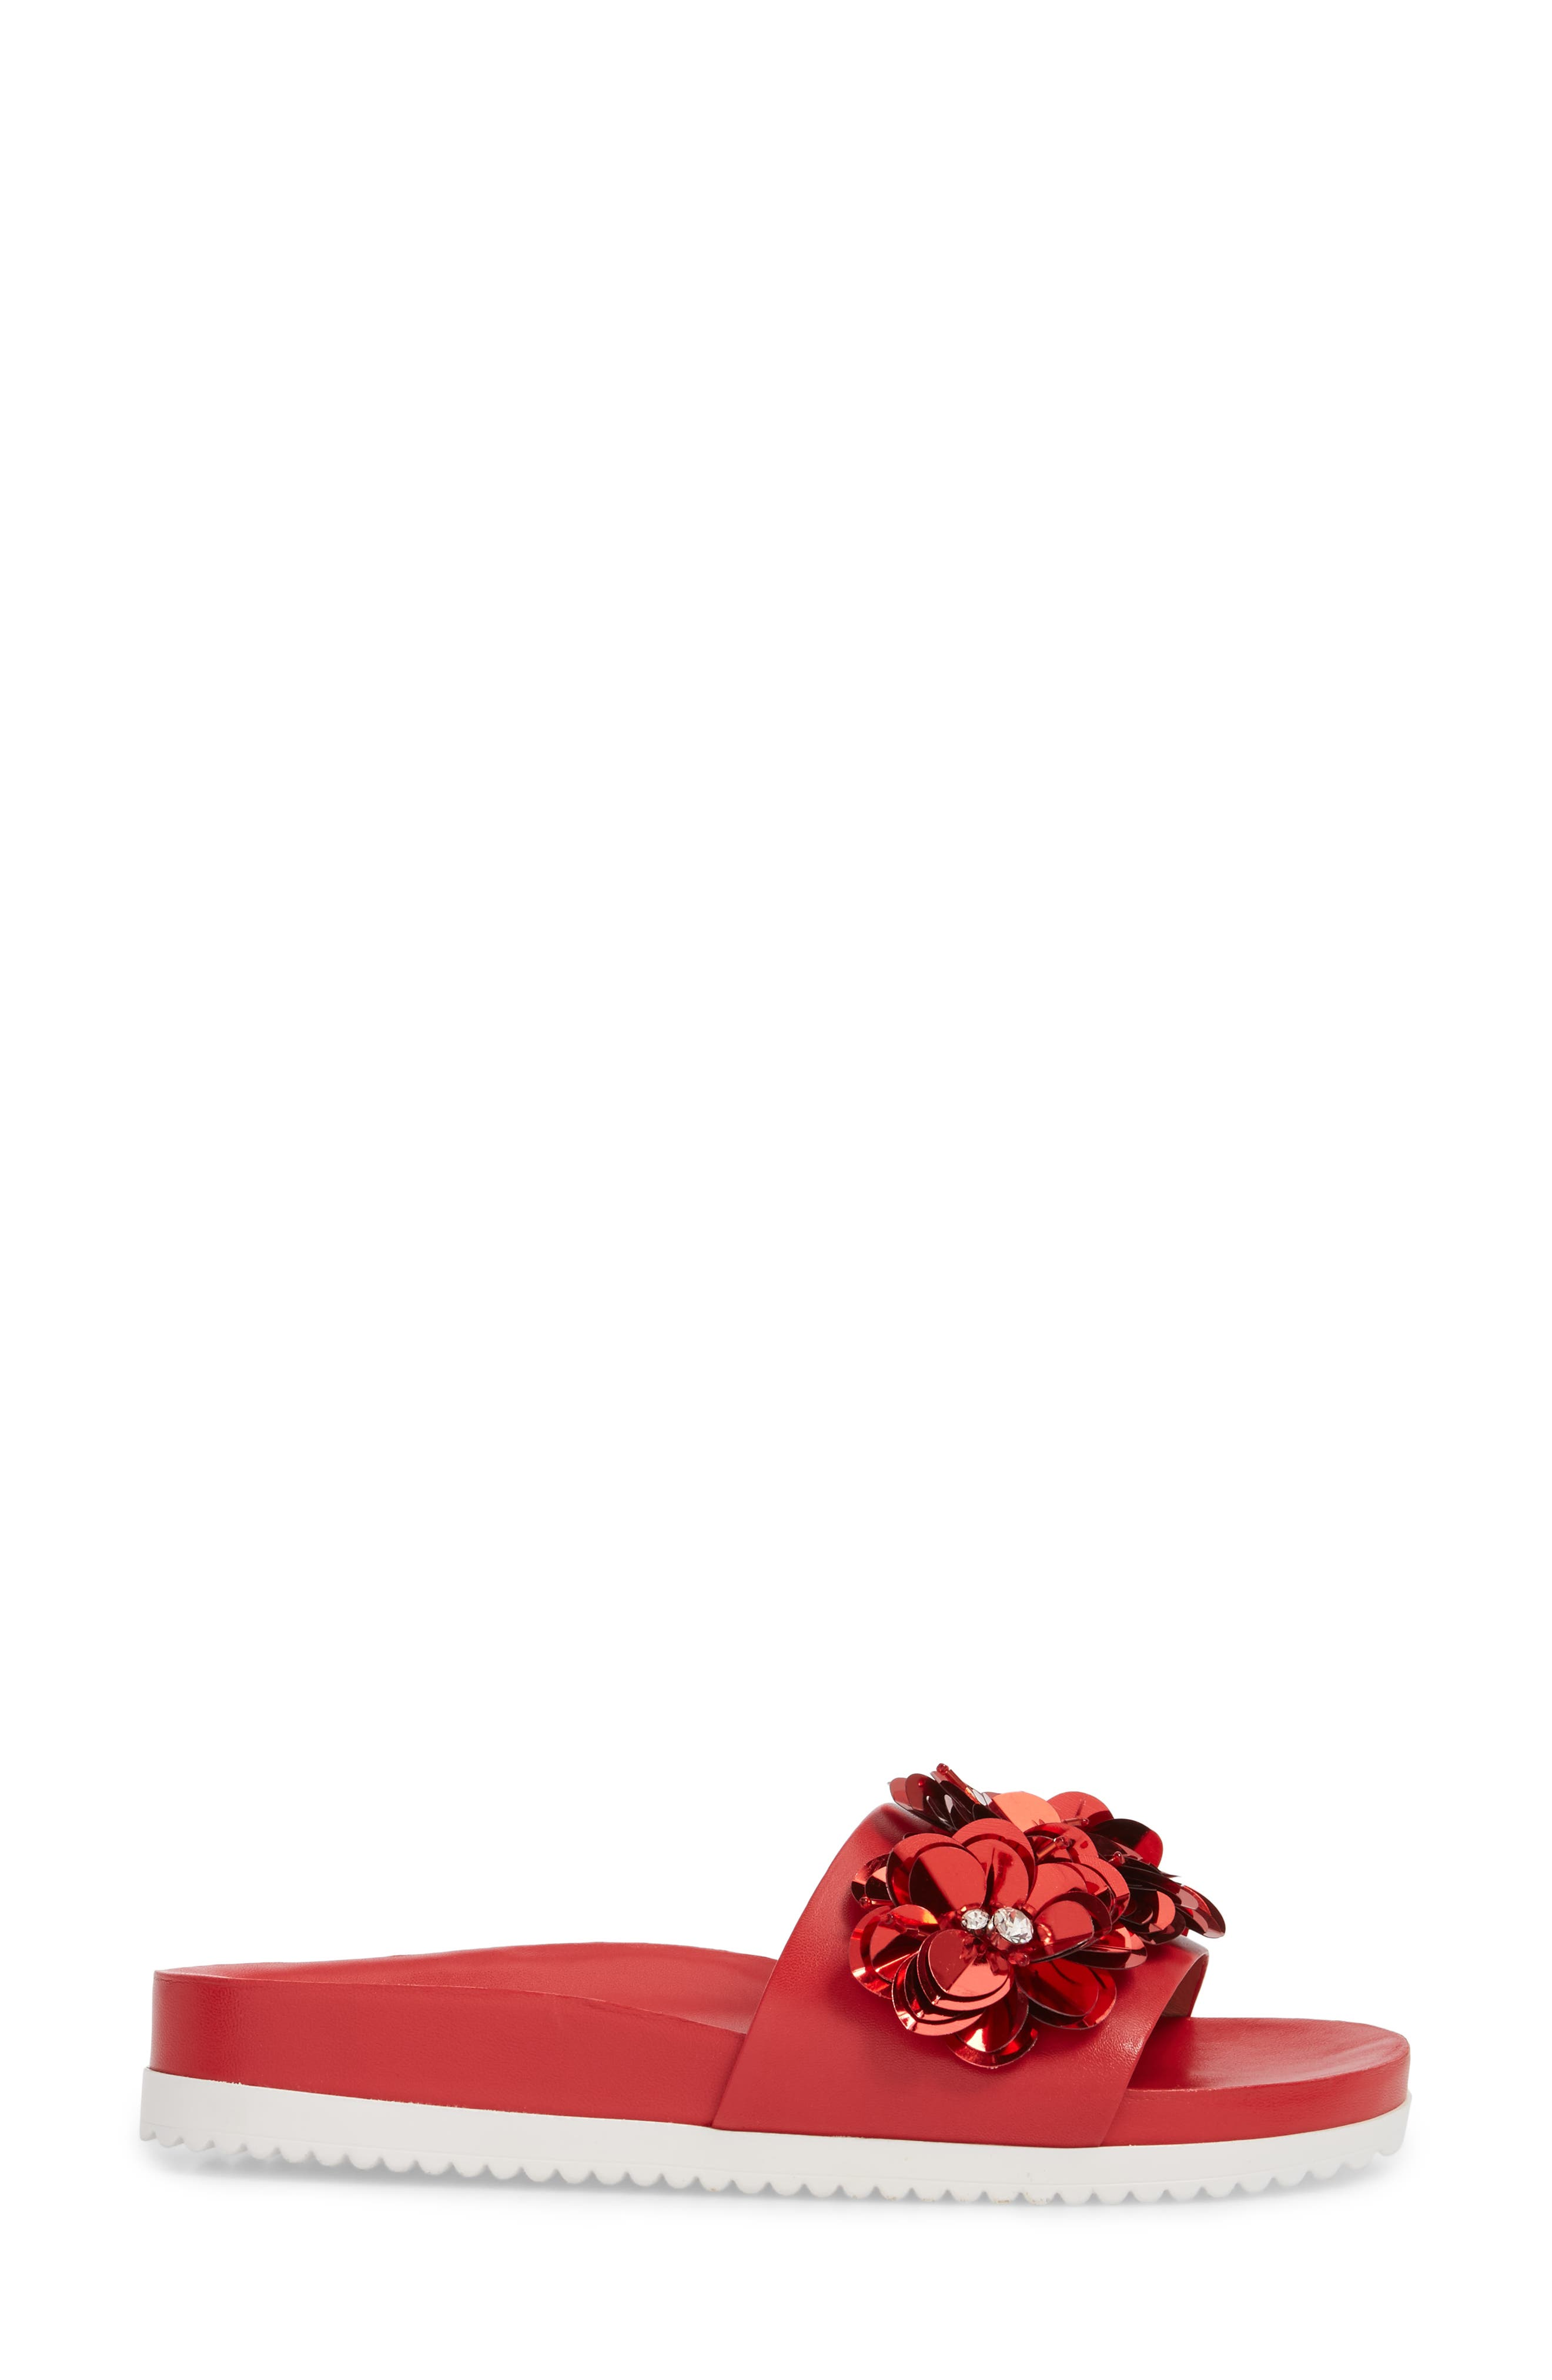 Lotus Embellished Flower Sandal Slide,                             Alternate thumbnail 3, color,                             Red Fabric